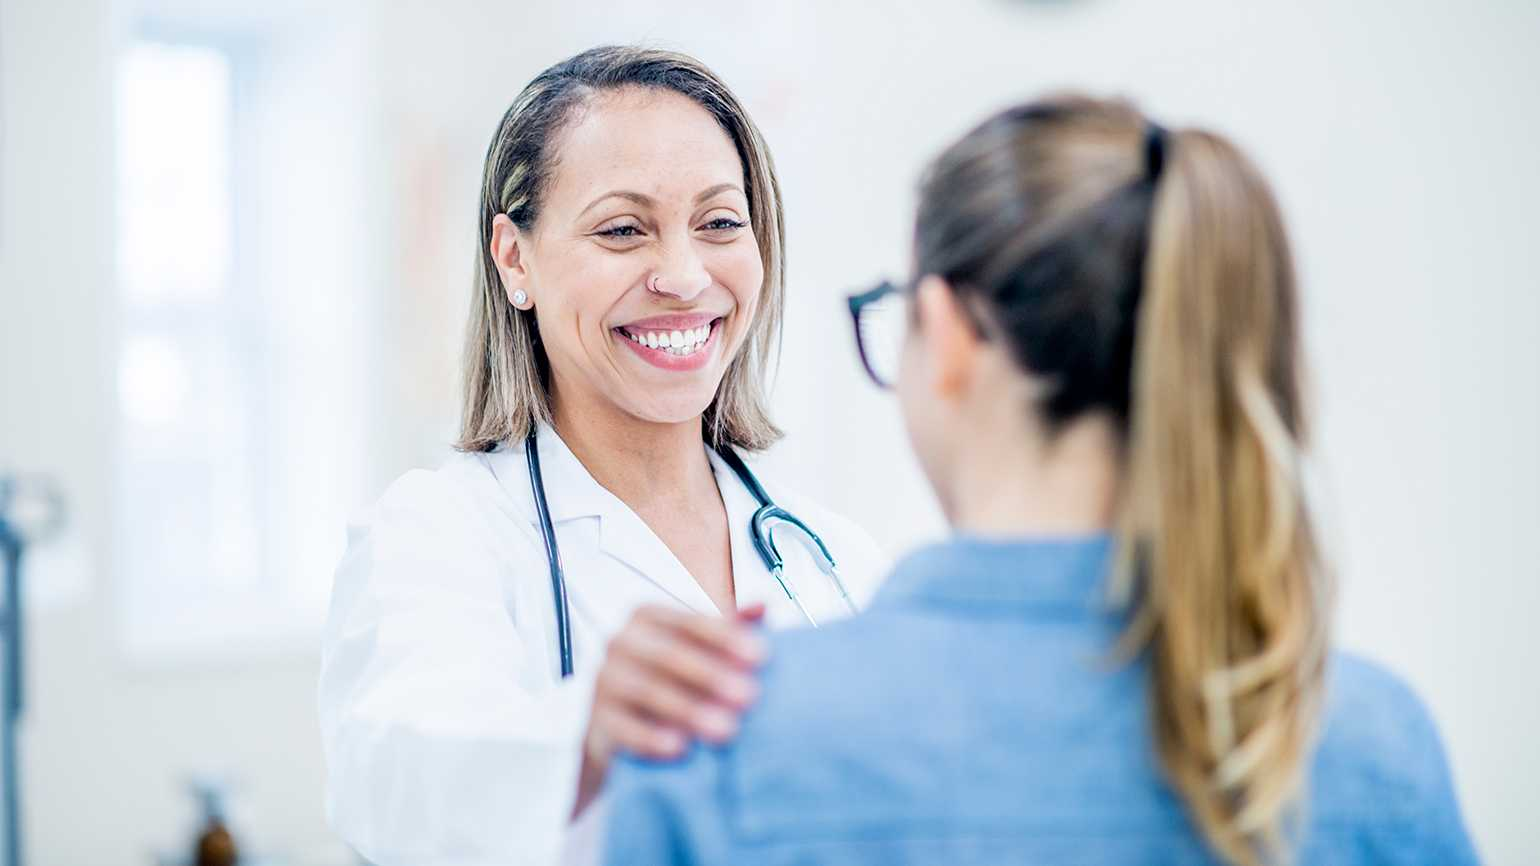 A positive doctor meets with a patient